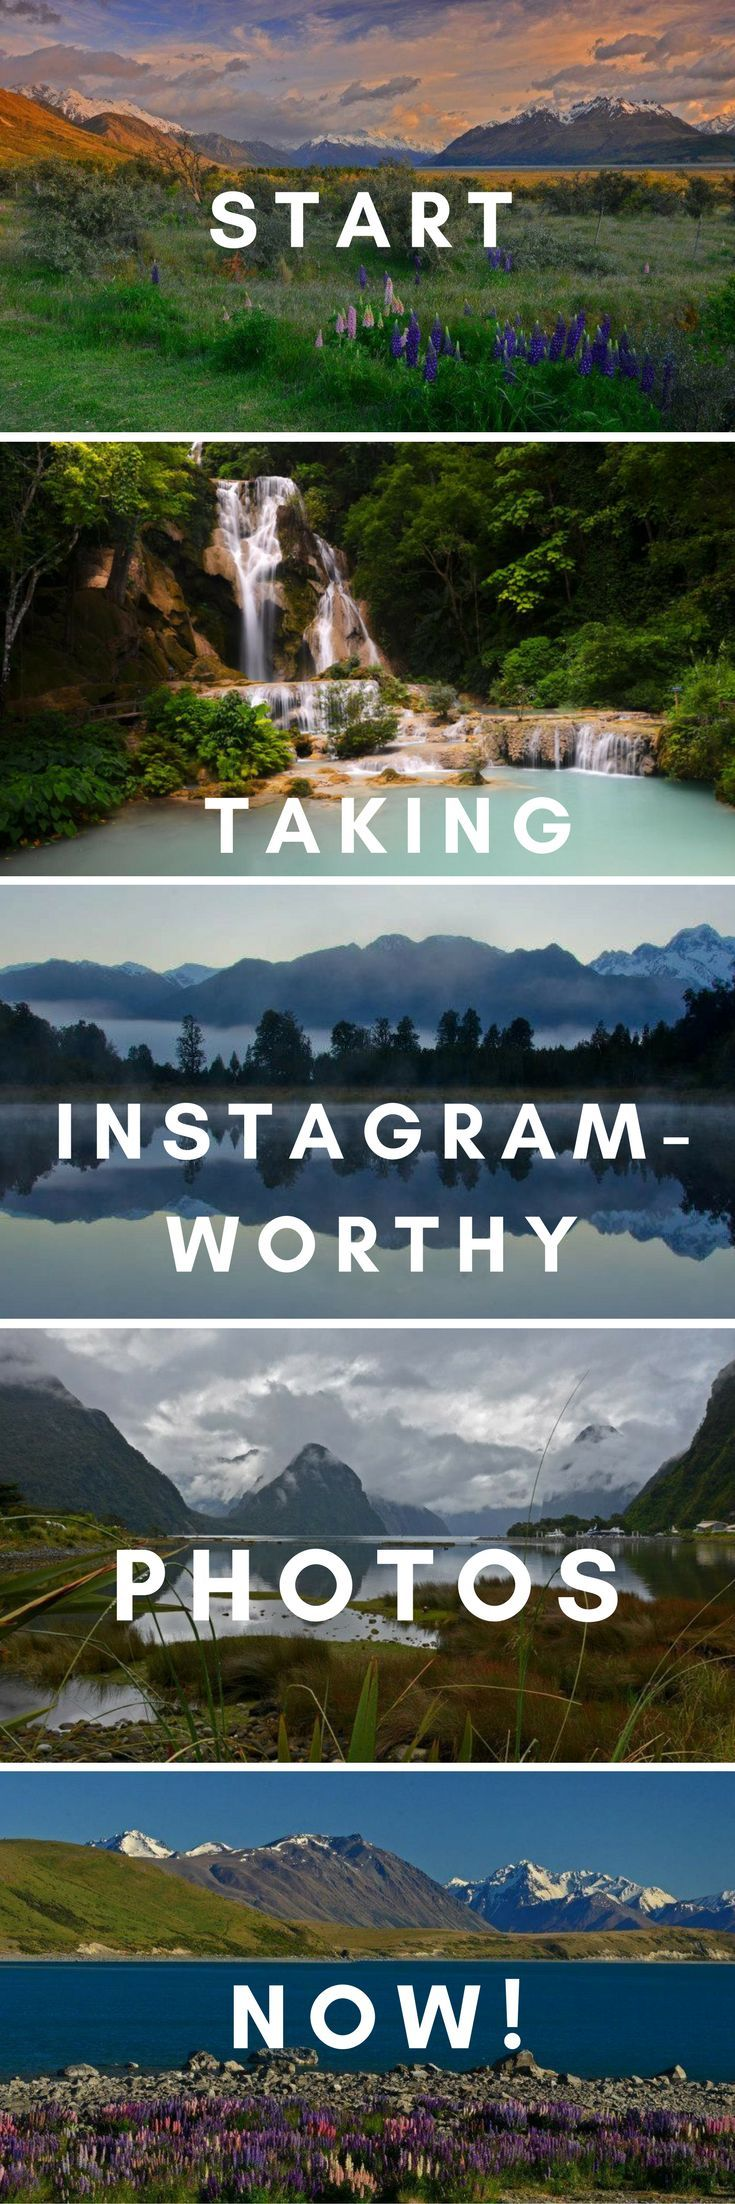 Easy Landscape Photography Tips To Take Instagram-Perfect